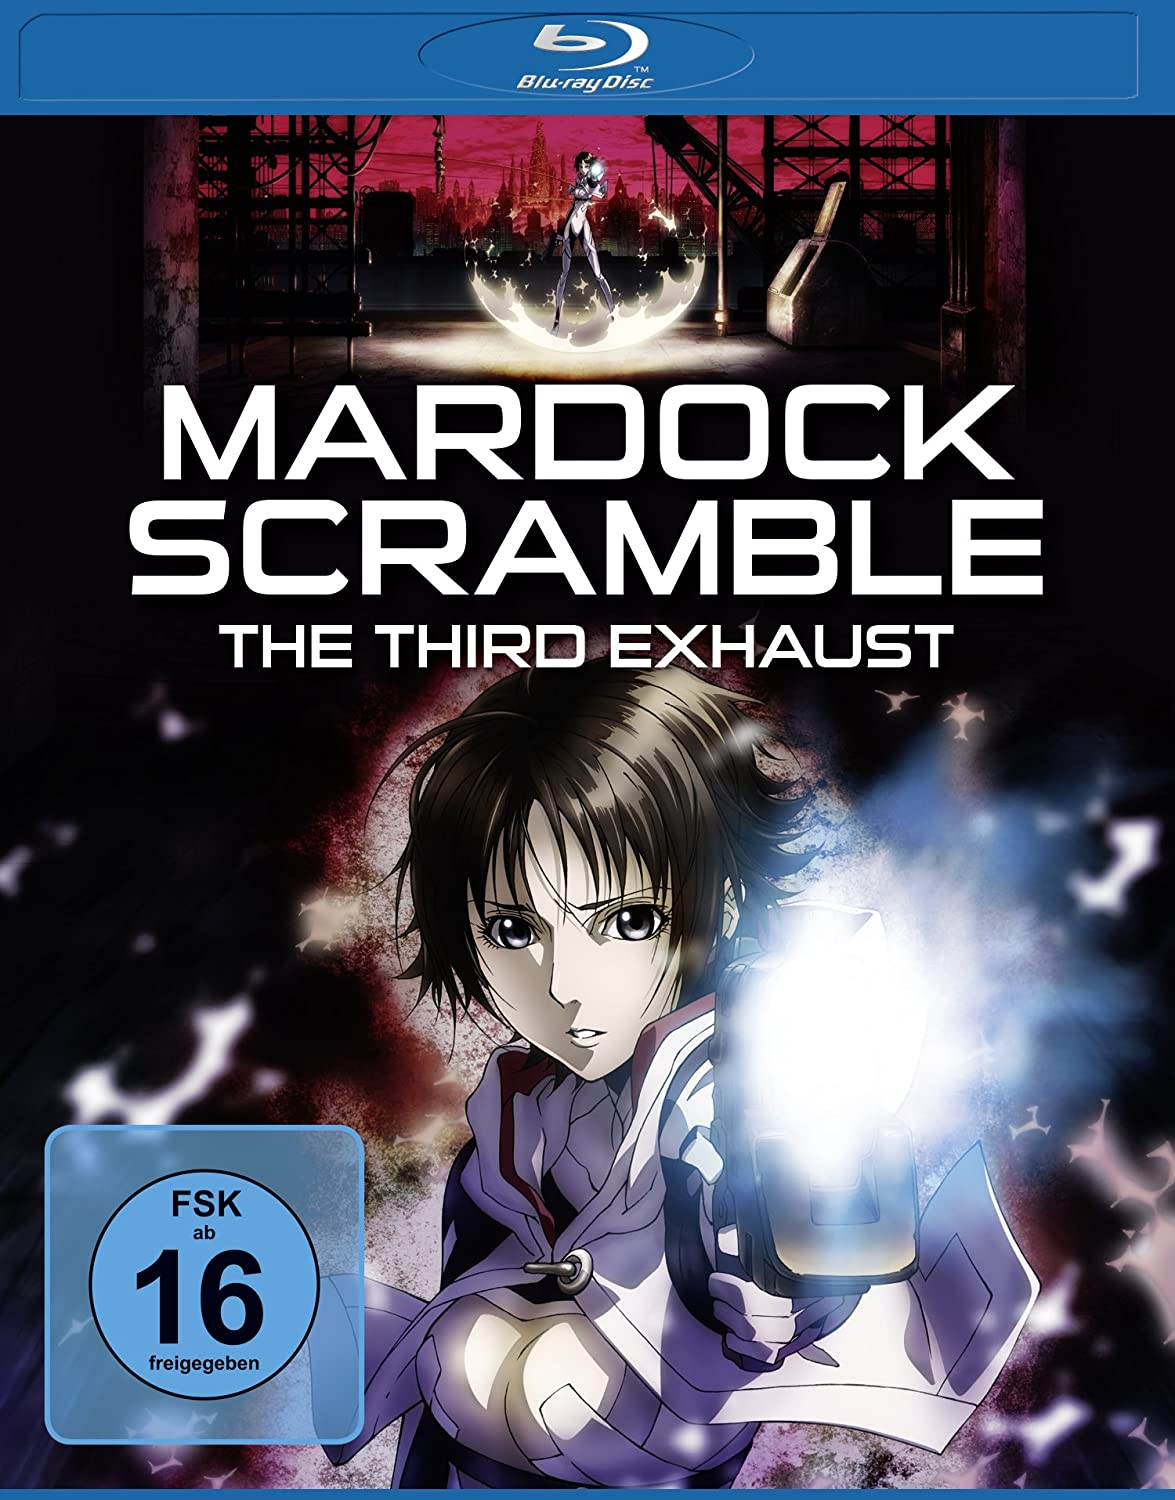 Mardock Scramble - The Third Exhaust, Blu-ray